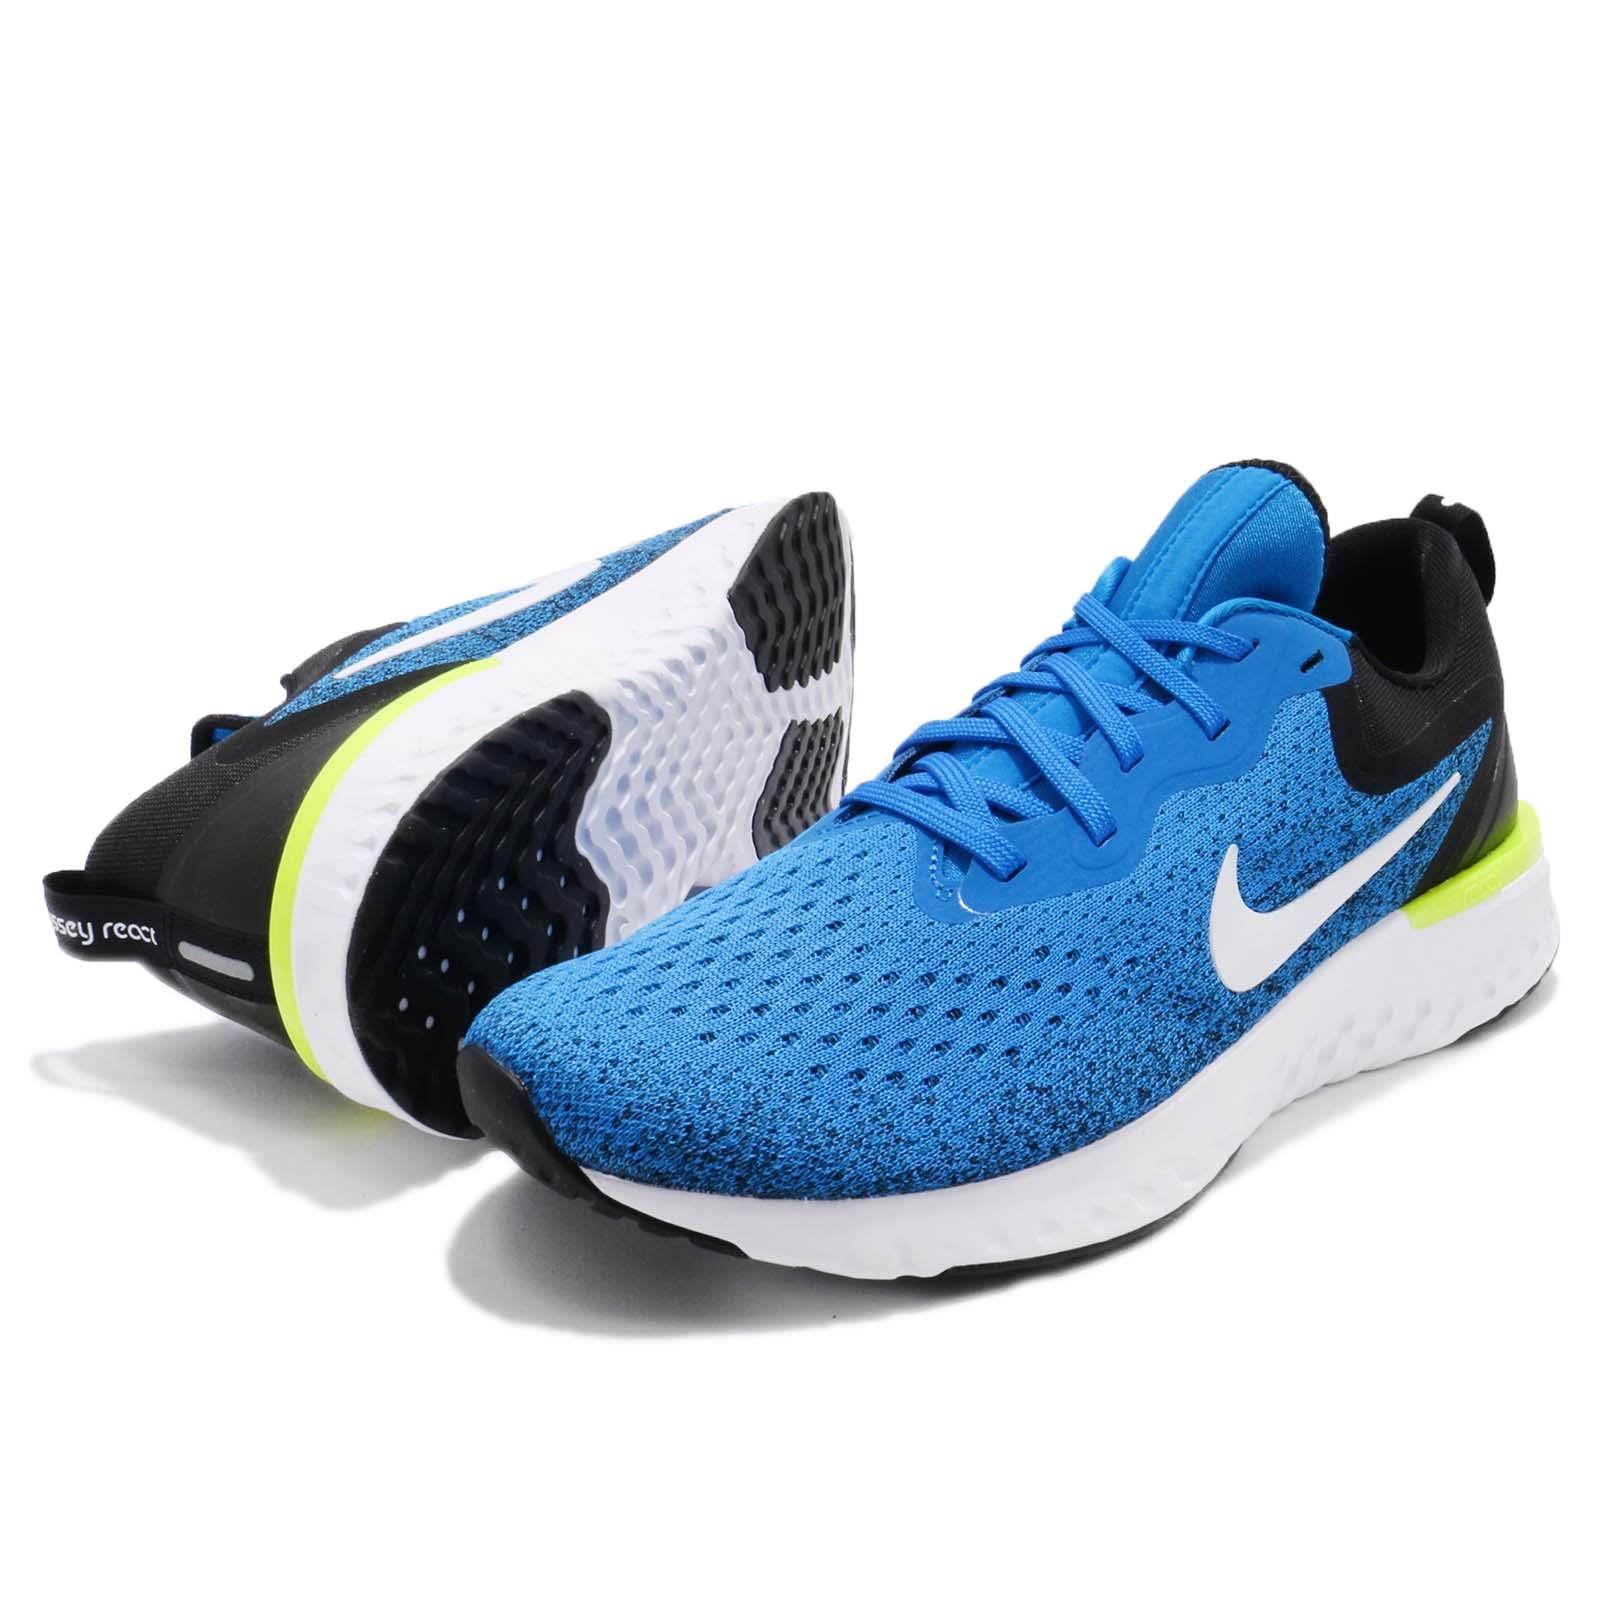 Nike Men's Odyssey React Running Shoes (7.5, Photo Blue/Black) by Nike (Image #6)